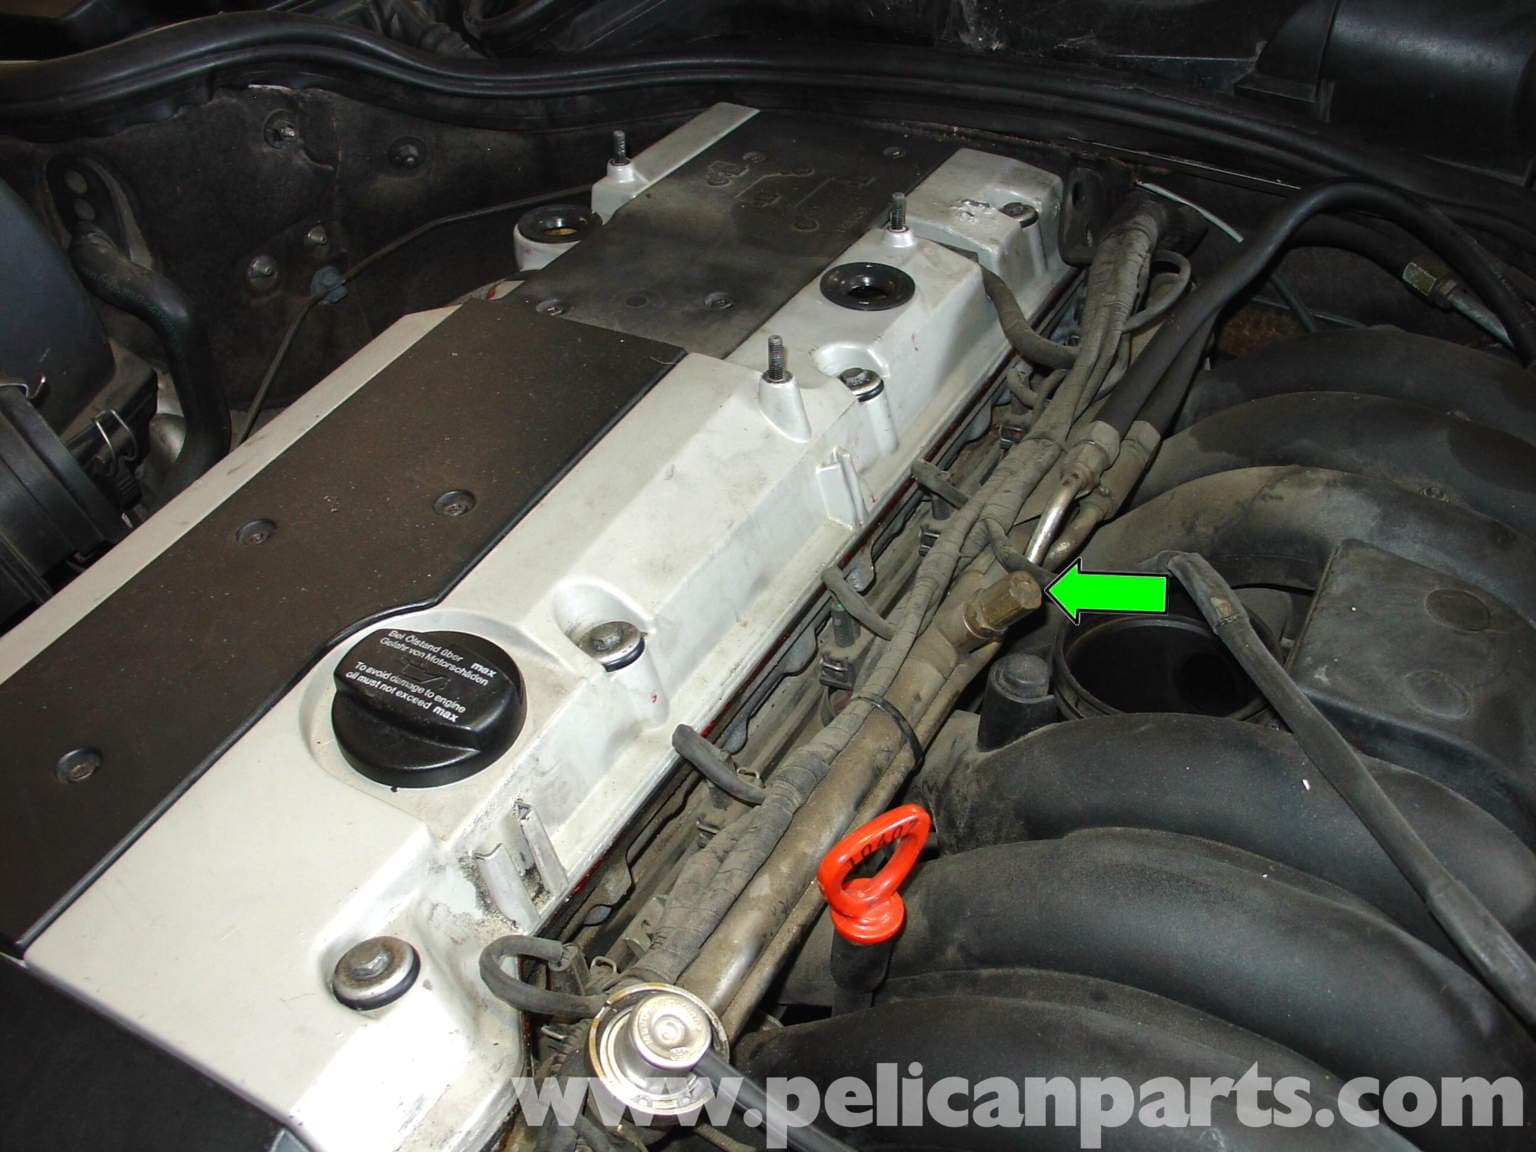 Mercedes benz w210 fuel injector replacement 1996 03 for Spare parts mercedes benz